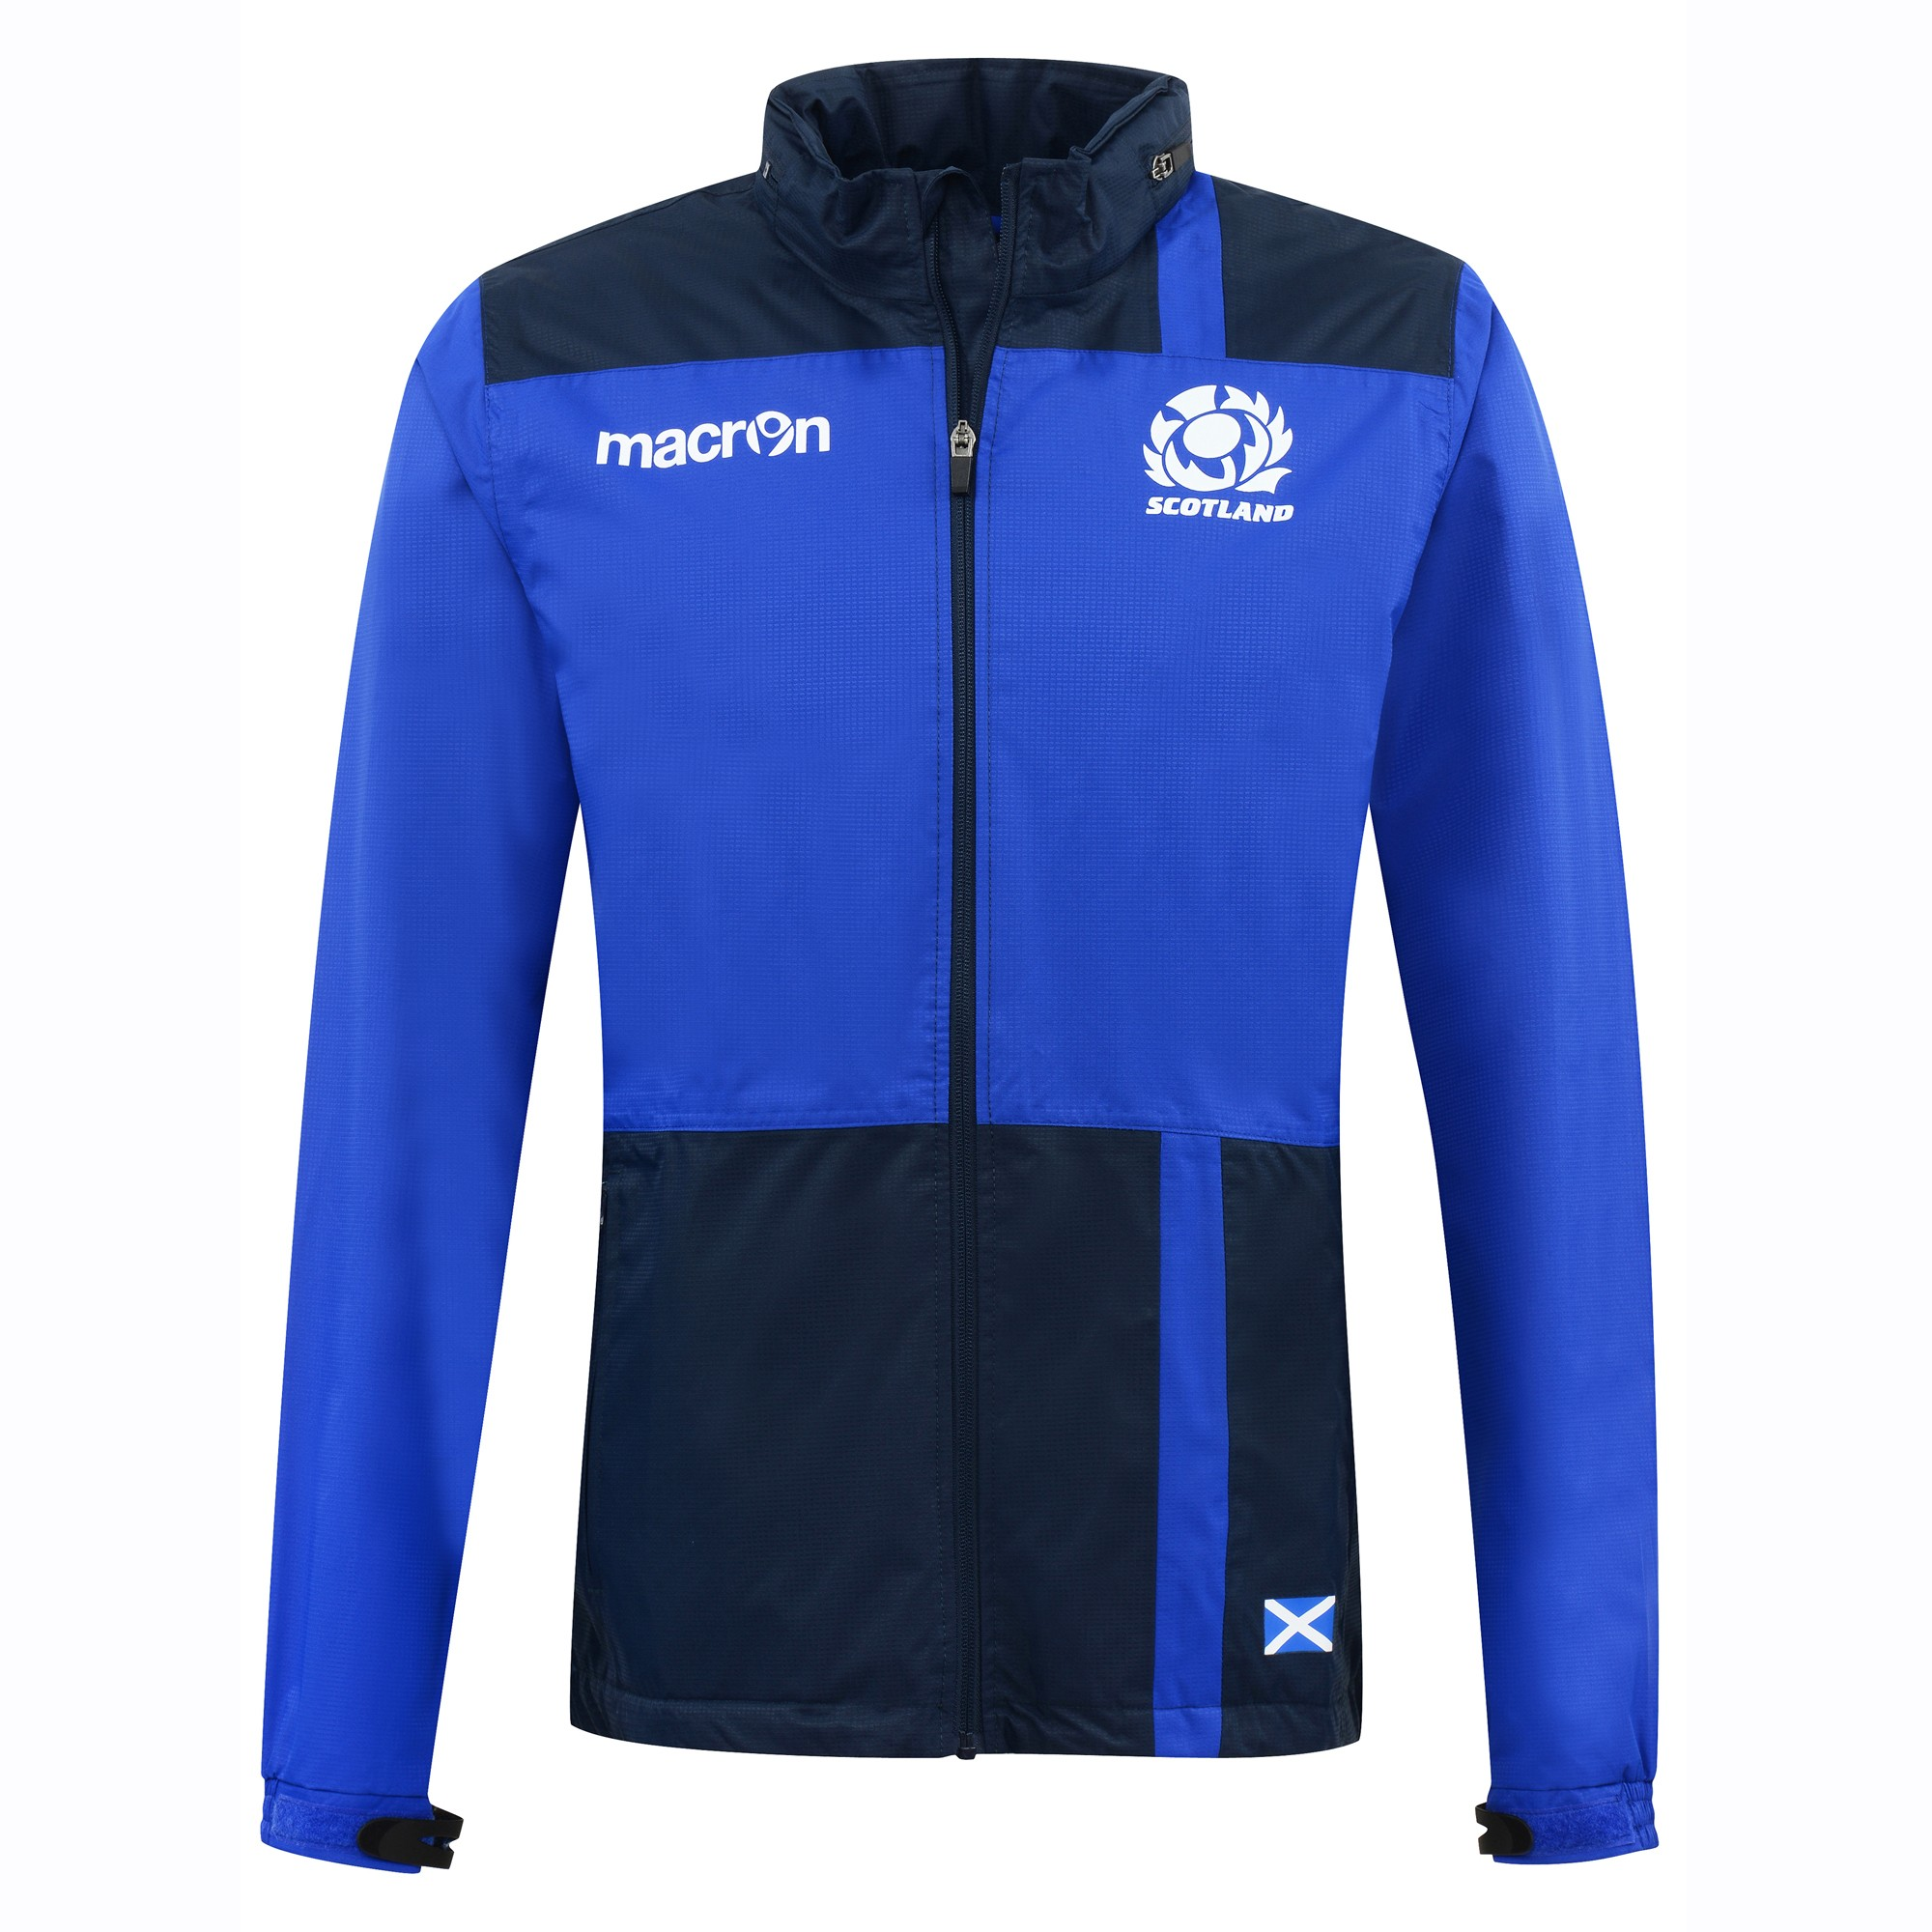 2016-2017 Scotland Macron Rugby Full Zip Waterproof Fleece Jacket (Blue)